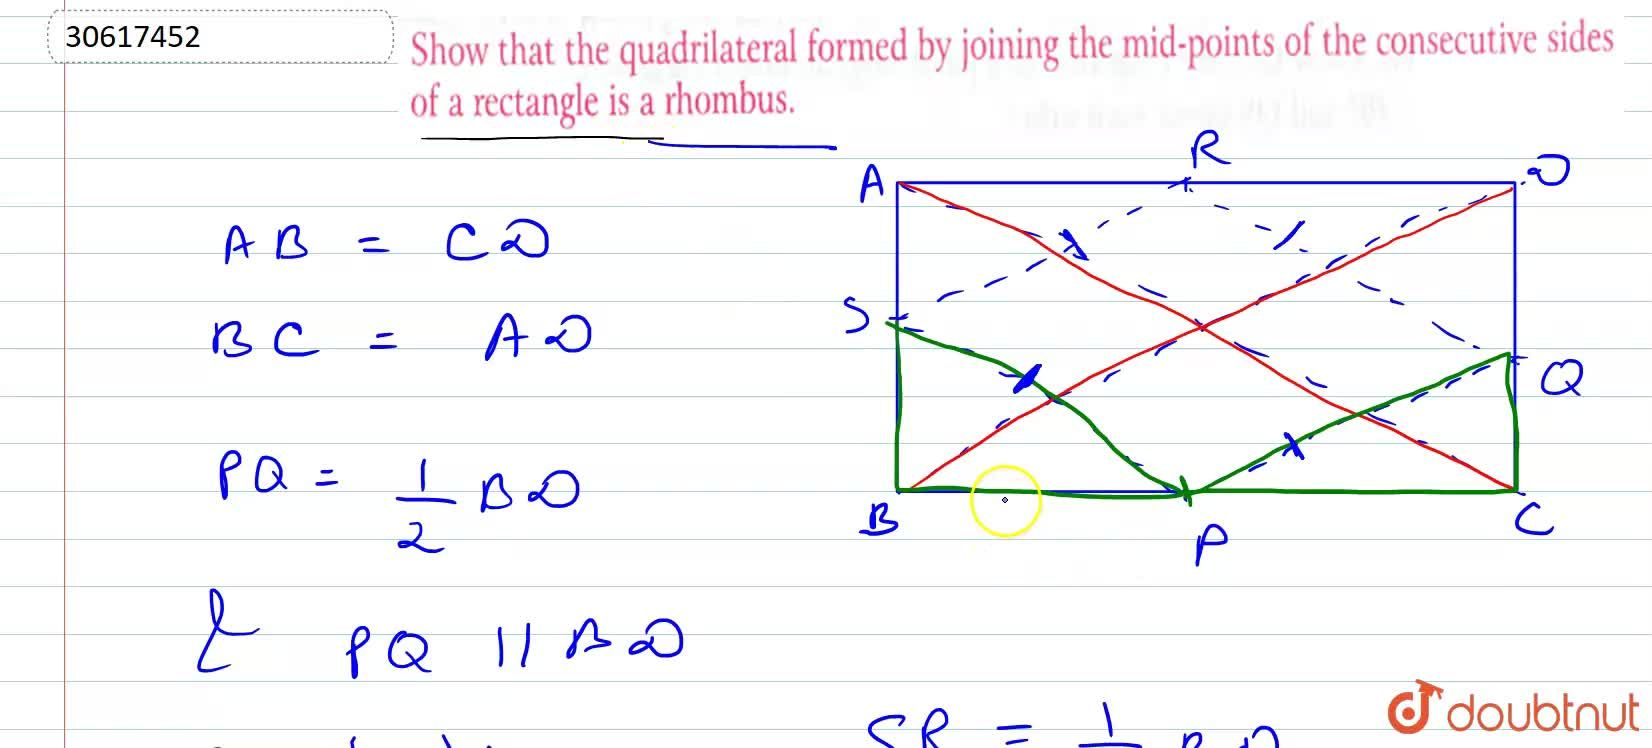 Show that the quadrilateral formed by joining the mid-points of the consecutive sides of a rectangle is a rhombus.